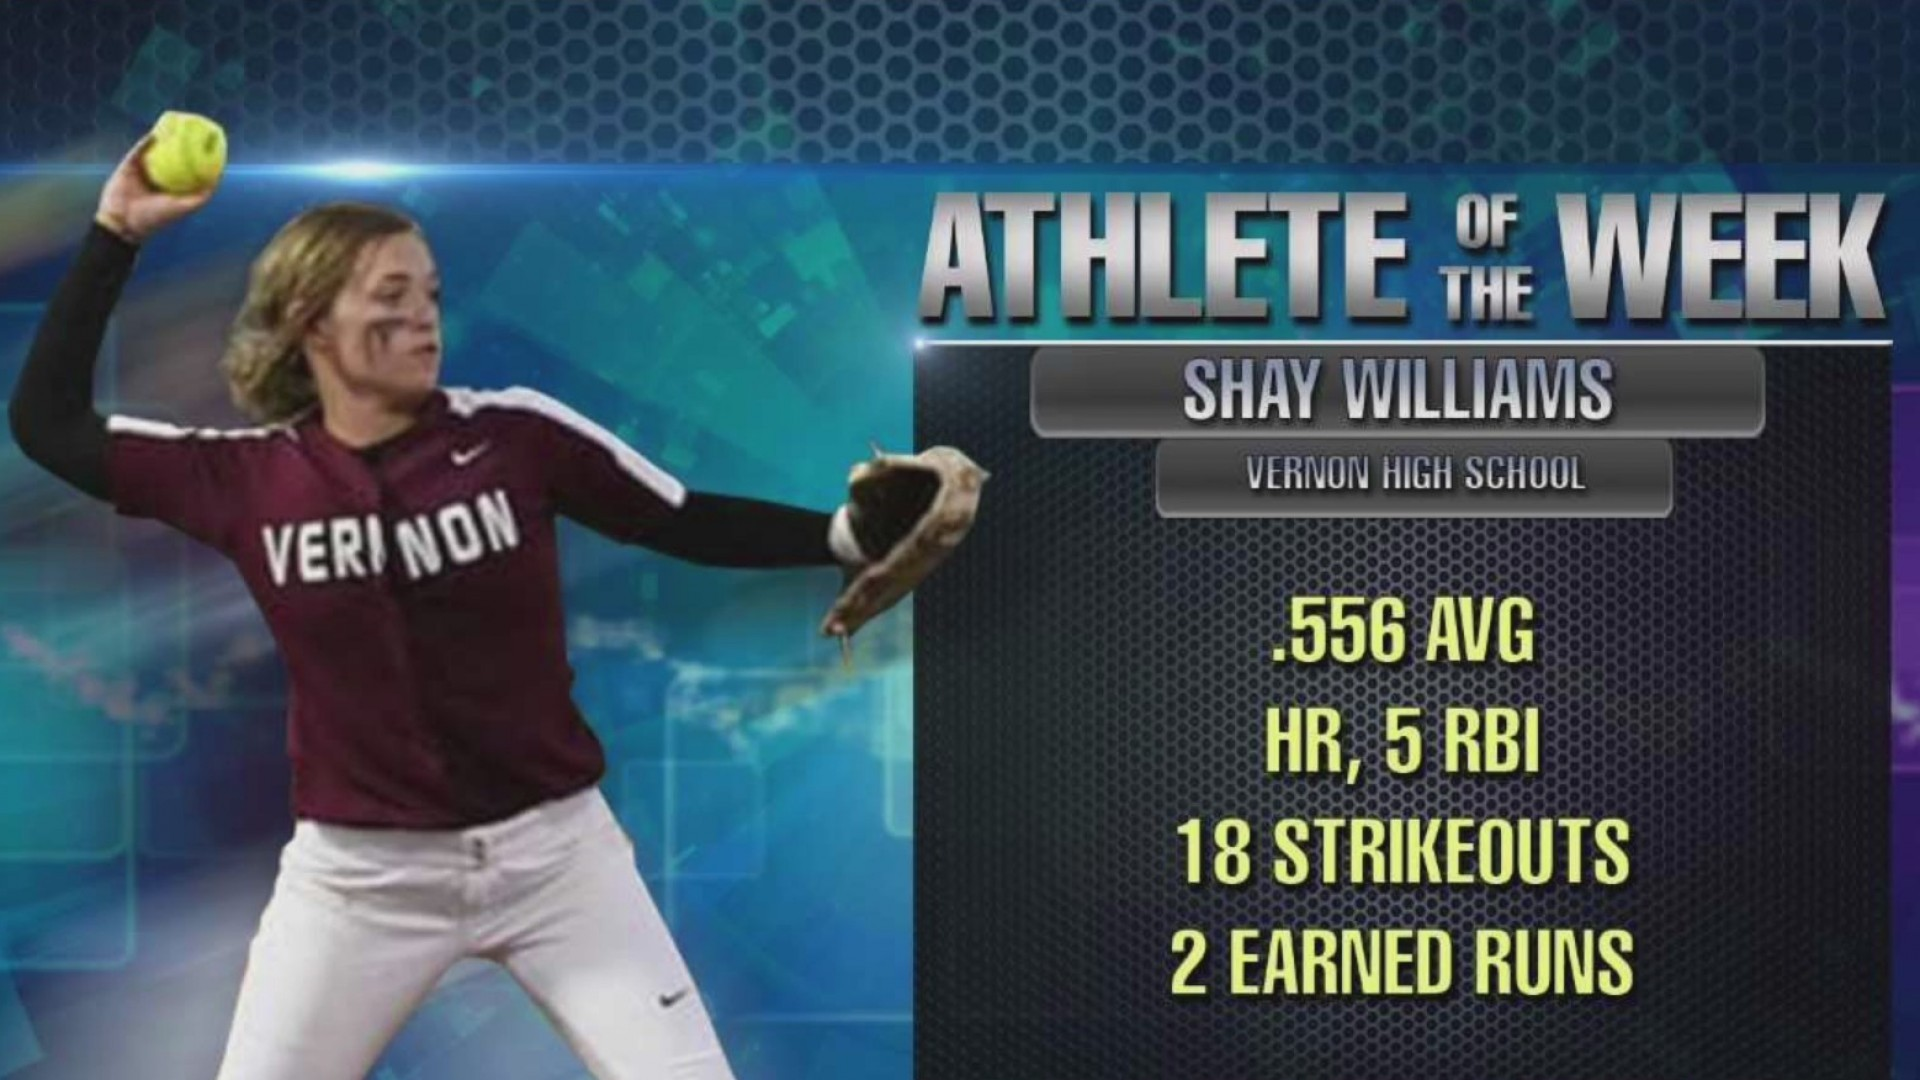 Athlete of the Week: Shay Williams